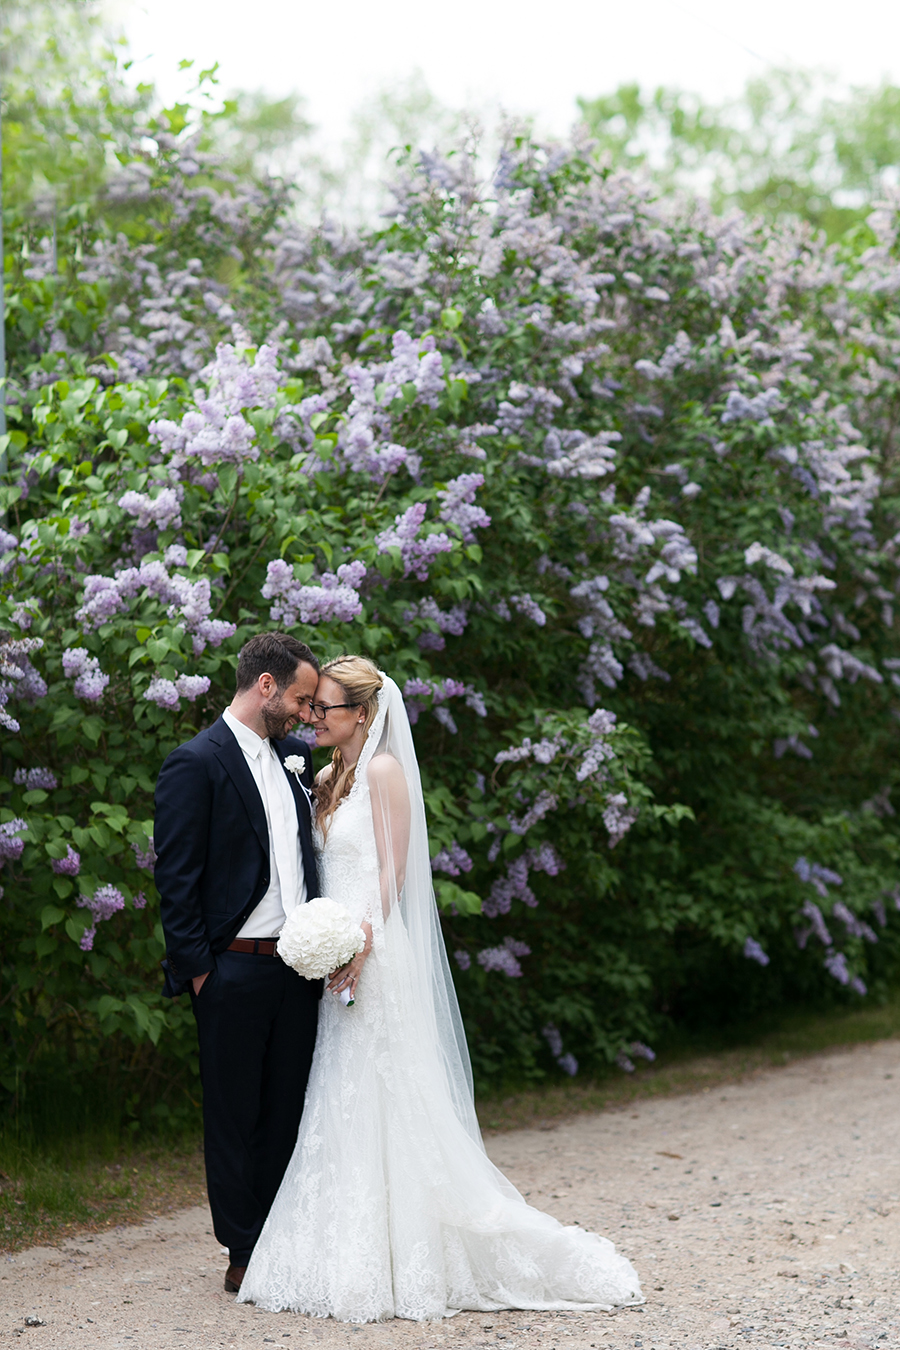 Bridal couple smiling at each other in front of a lilac bush.